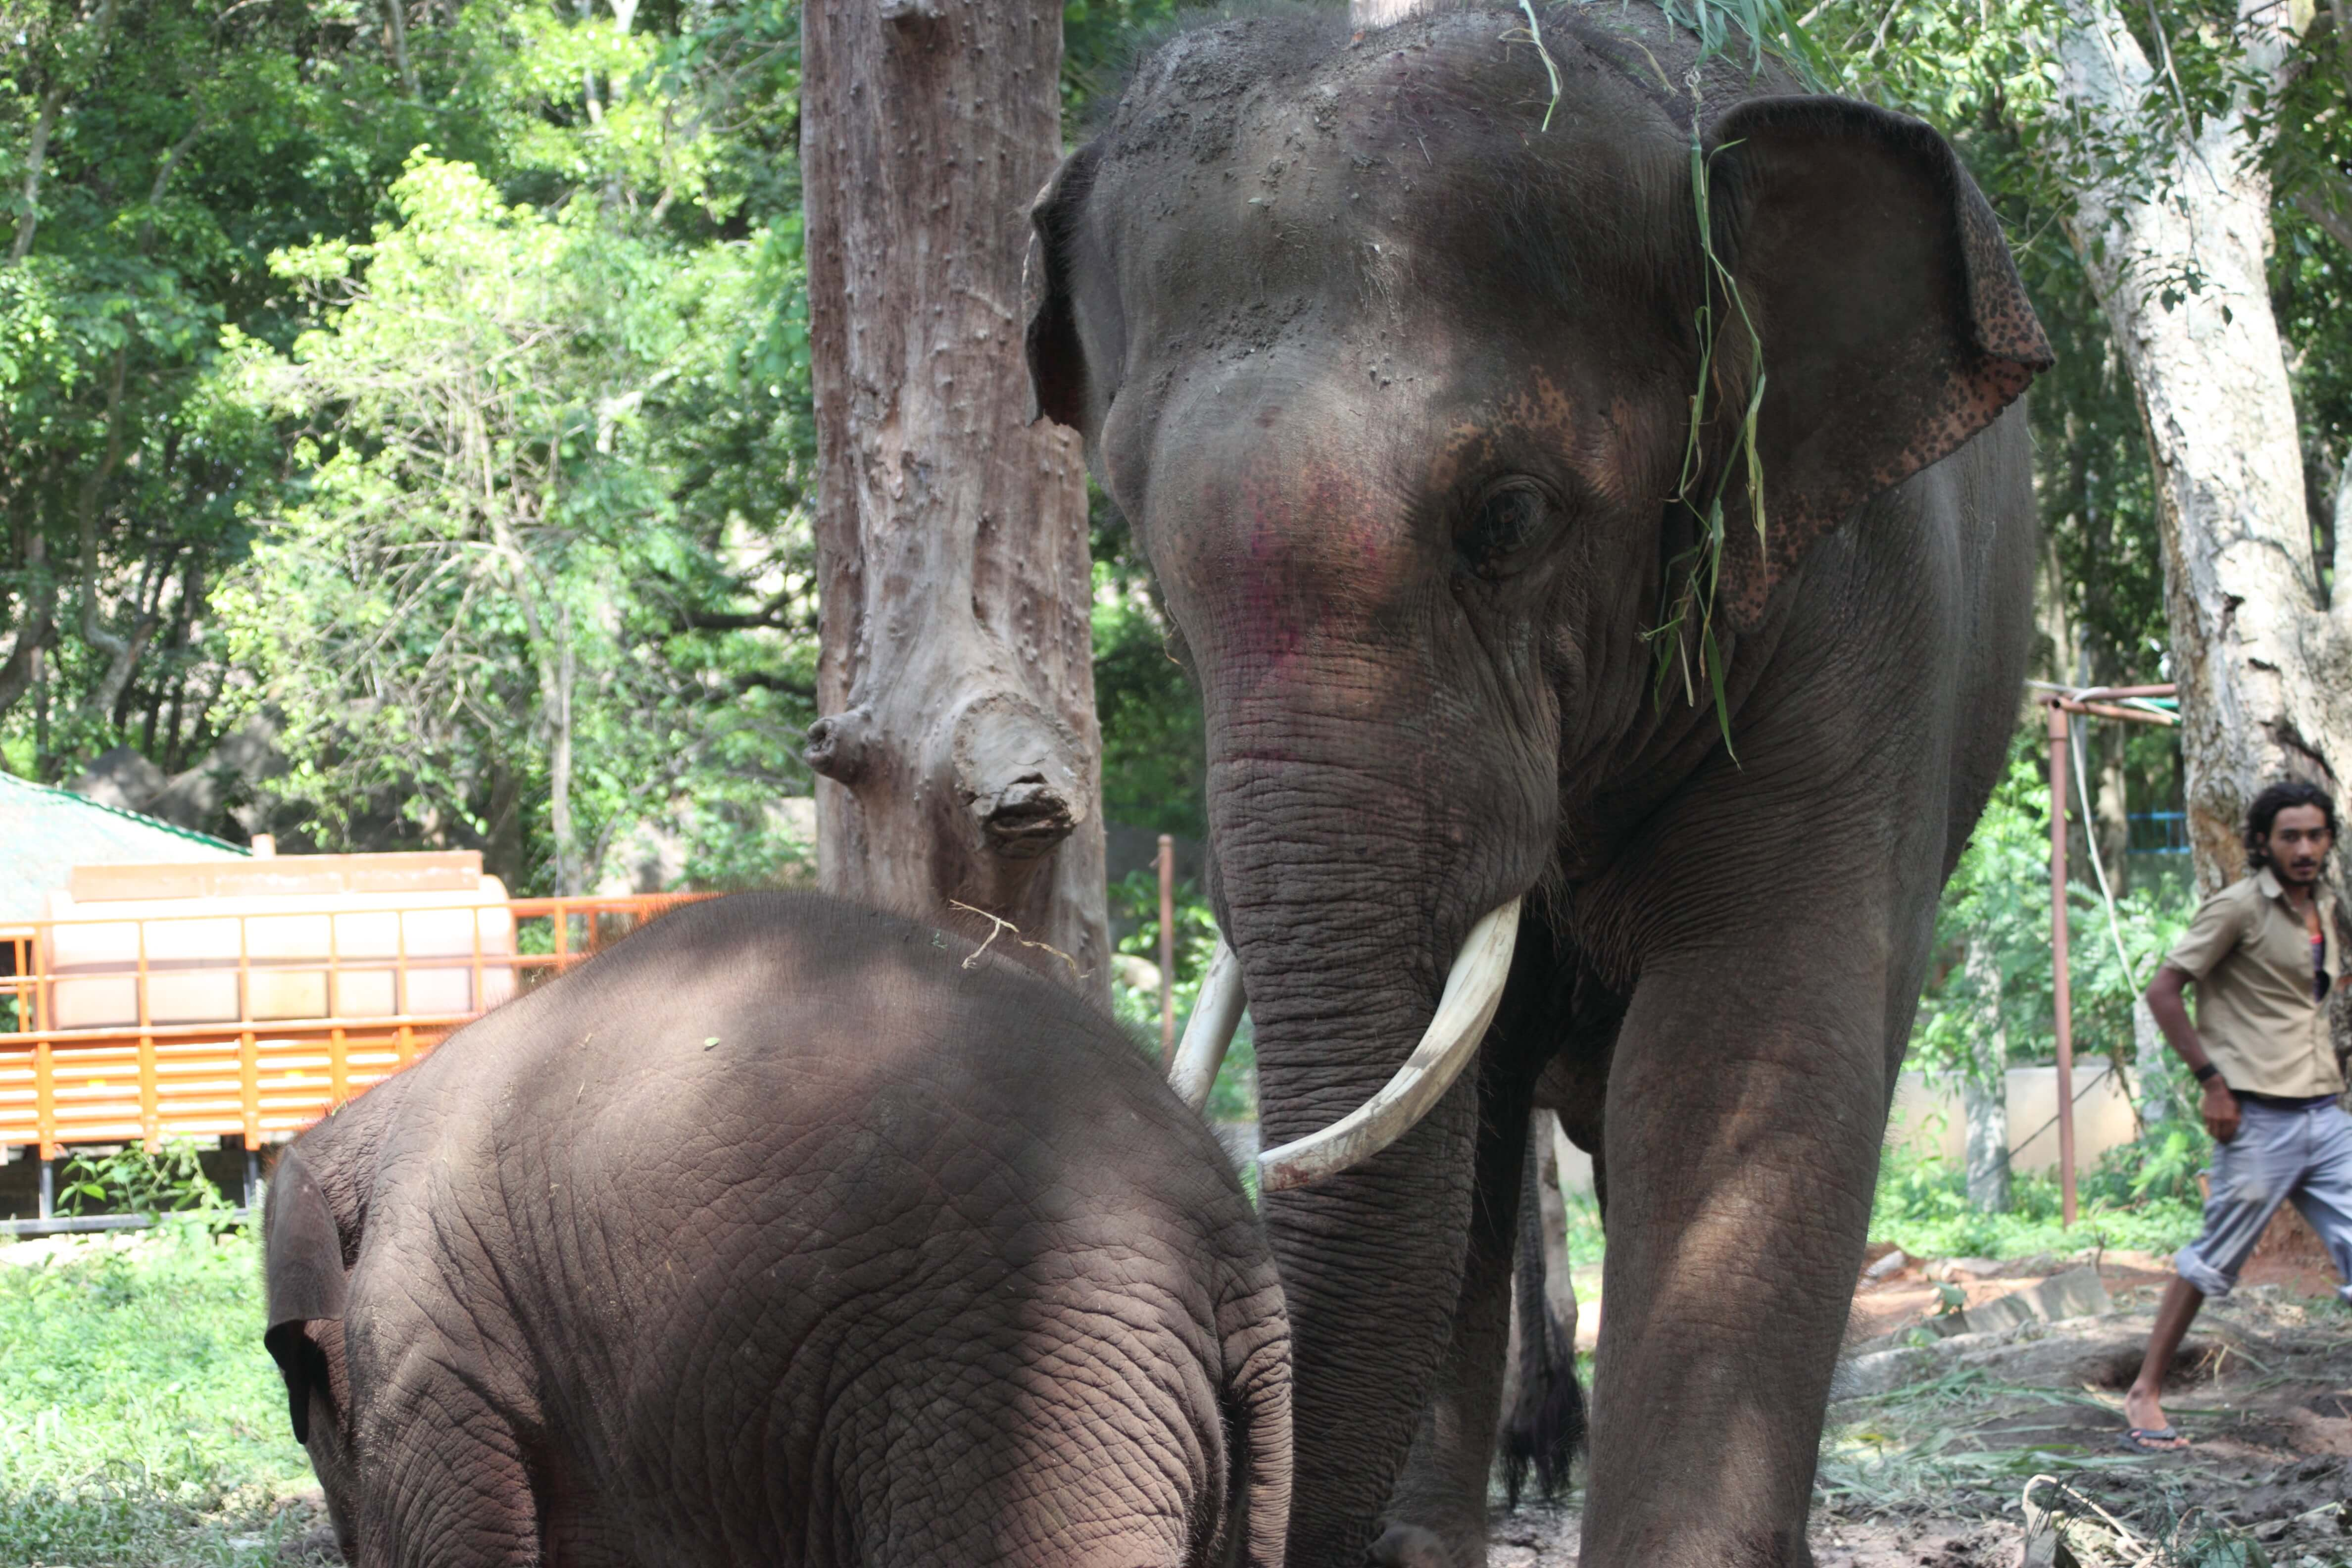 Baby Shiva is still curious about Sunder, and Sunder is becoming curious about the little one, too.